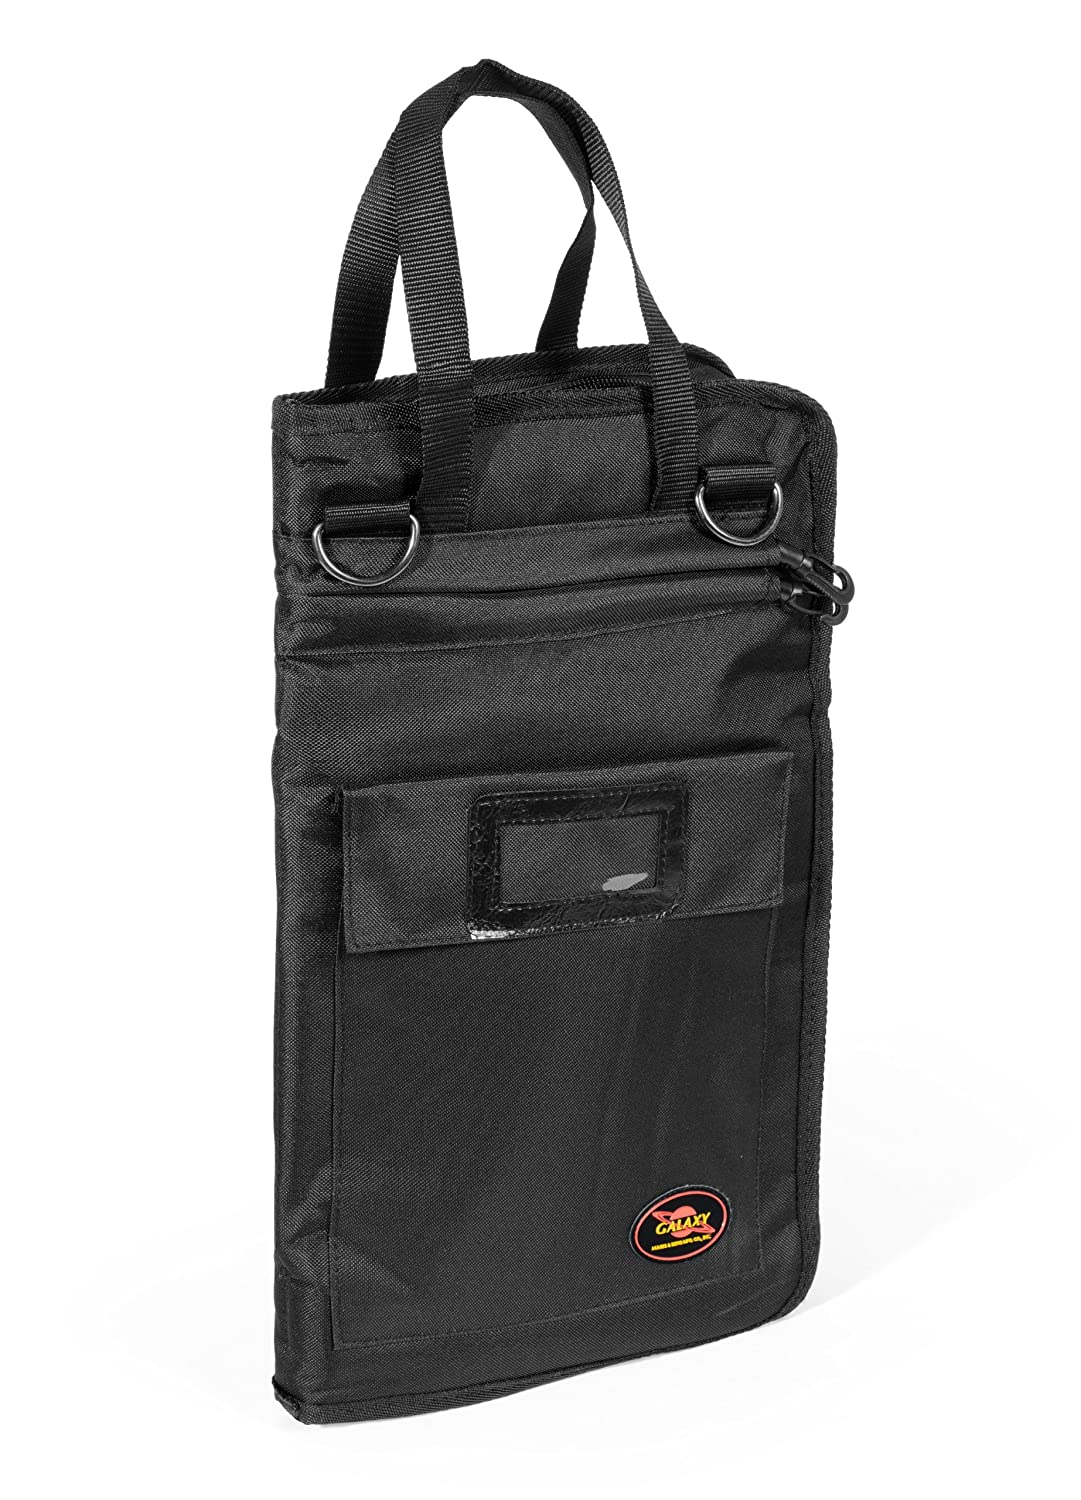 Humes & Berg Galaxy GL8001 Stick Bag with Shoulder Strap